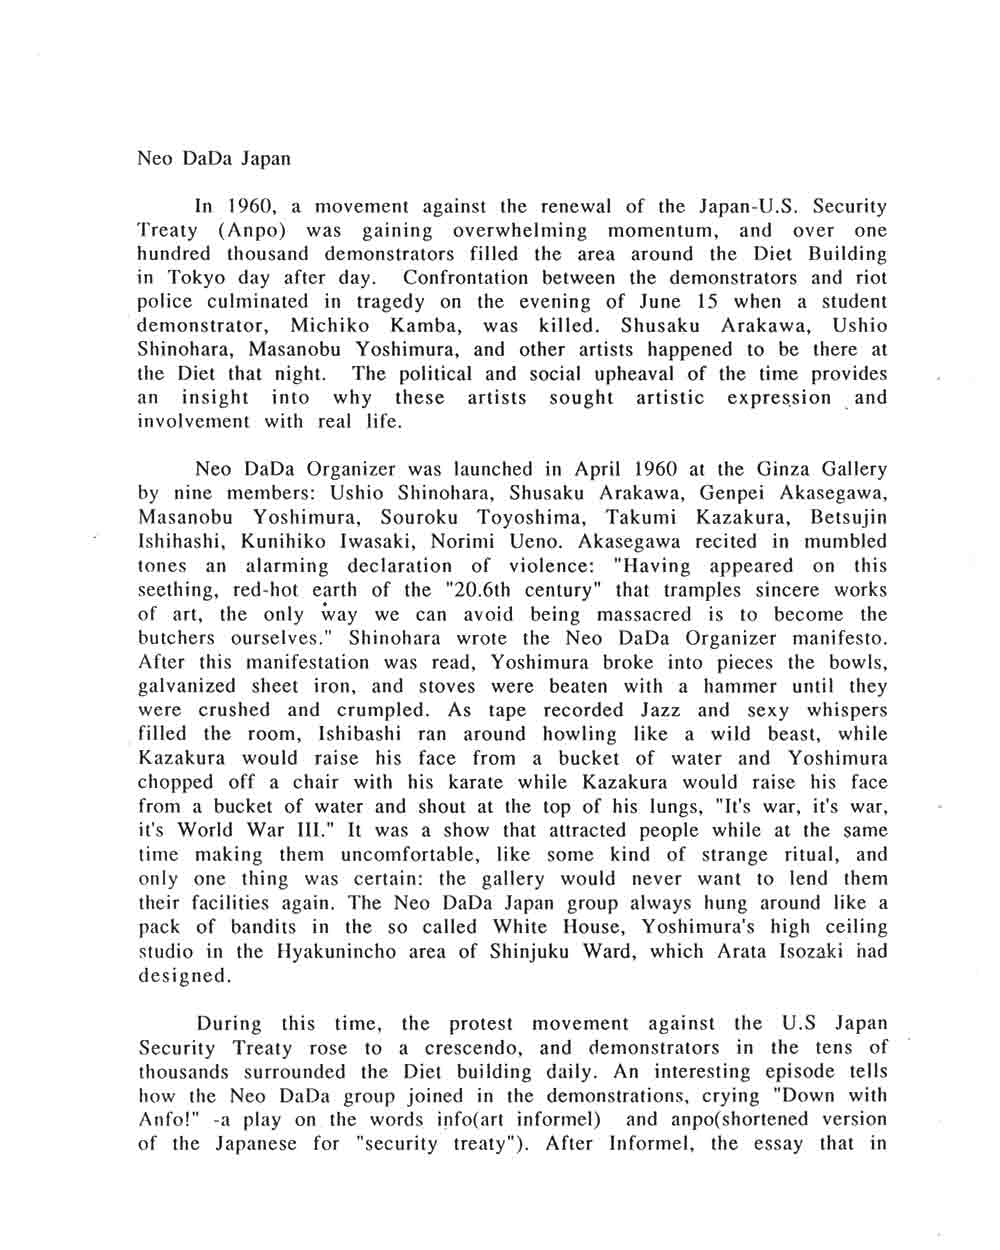 chinese art history essay Chinese art, the painting, calligraphy, architecture, pottery, sculpture, bronzes, jade carving, and other fine or decorative art forms produced in china one of the outstanding characteristics of chinese art is the extent to which it reflects the class structure that has existed at different times in chinese history.